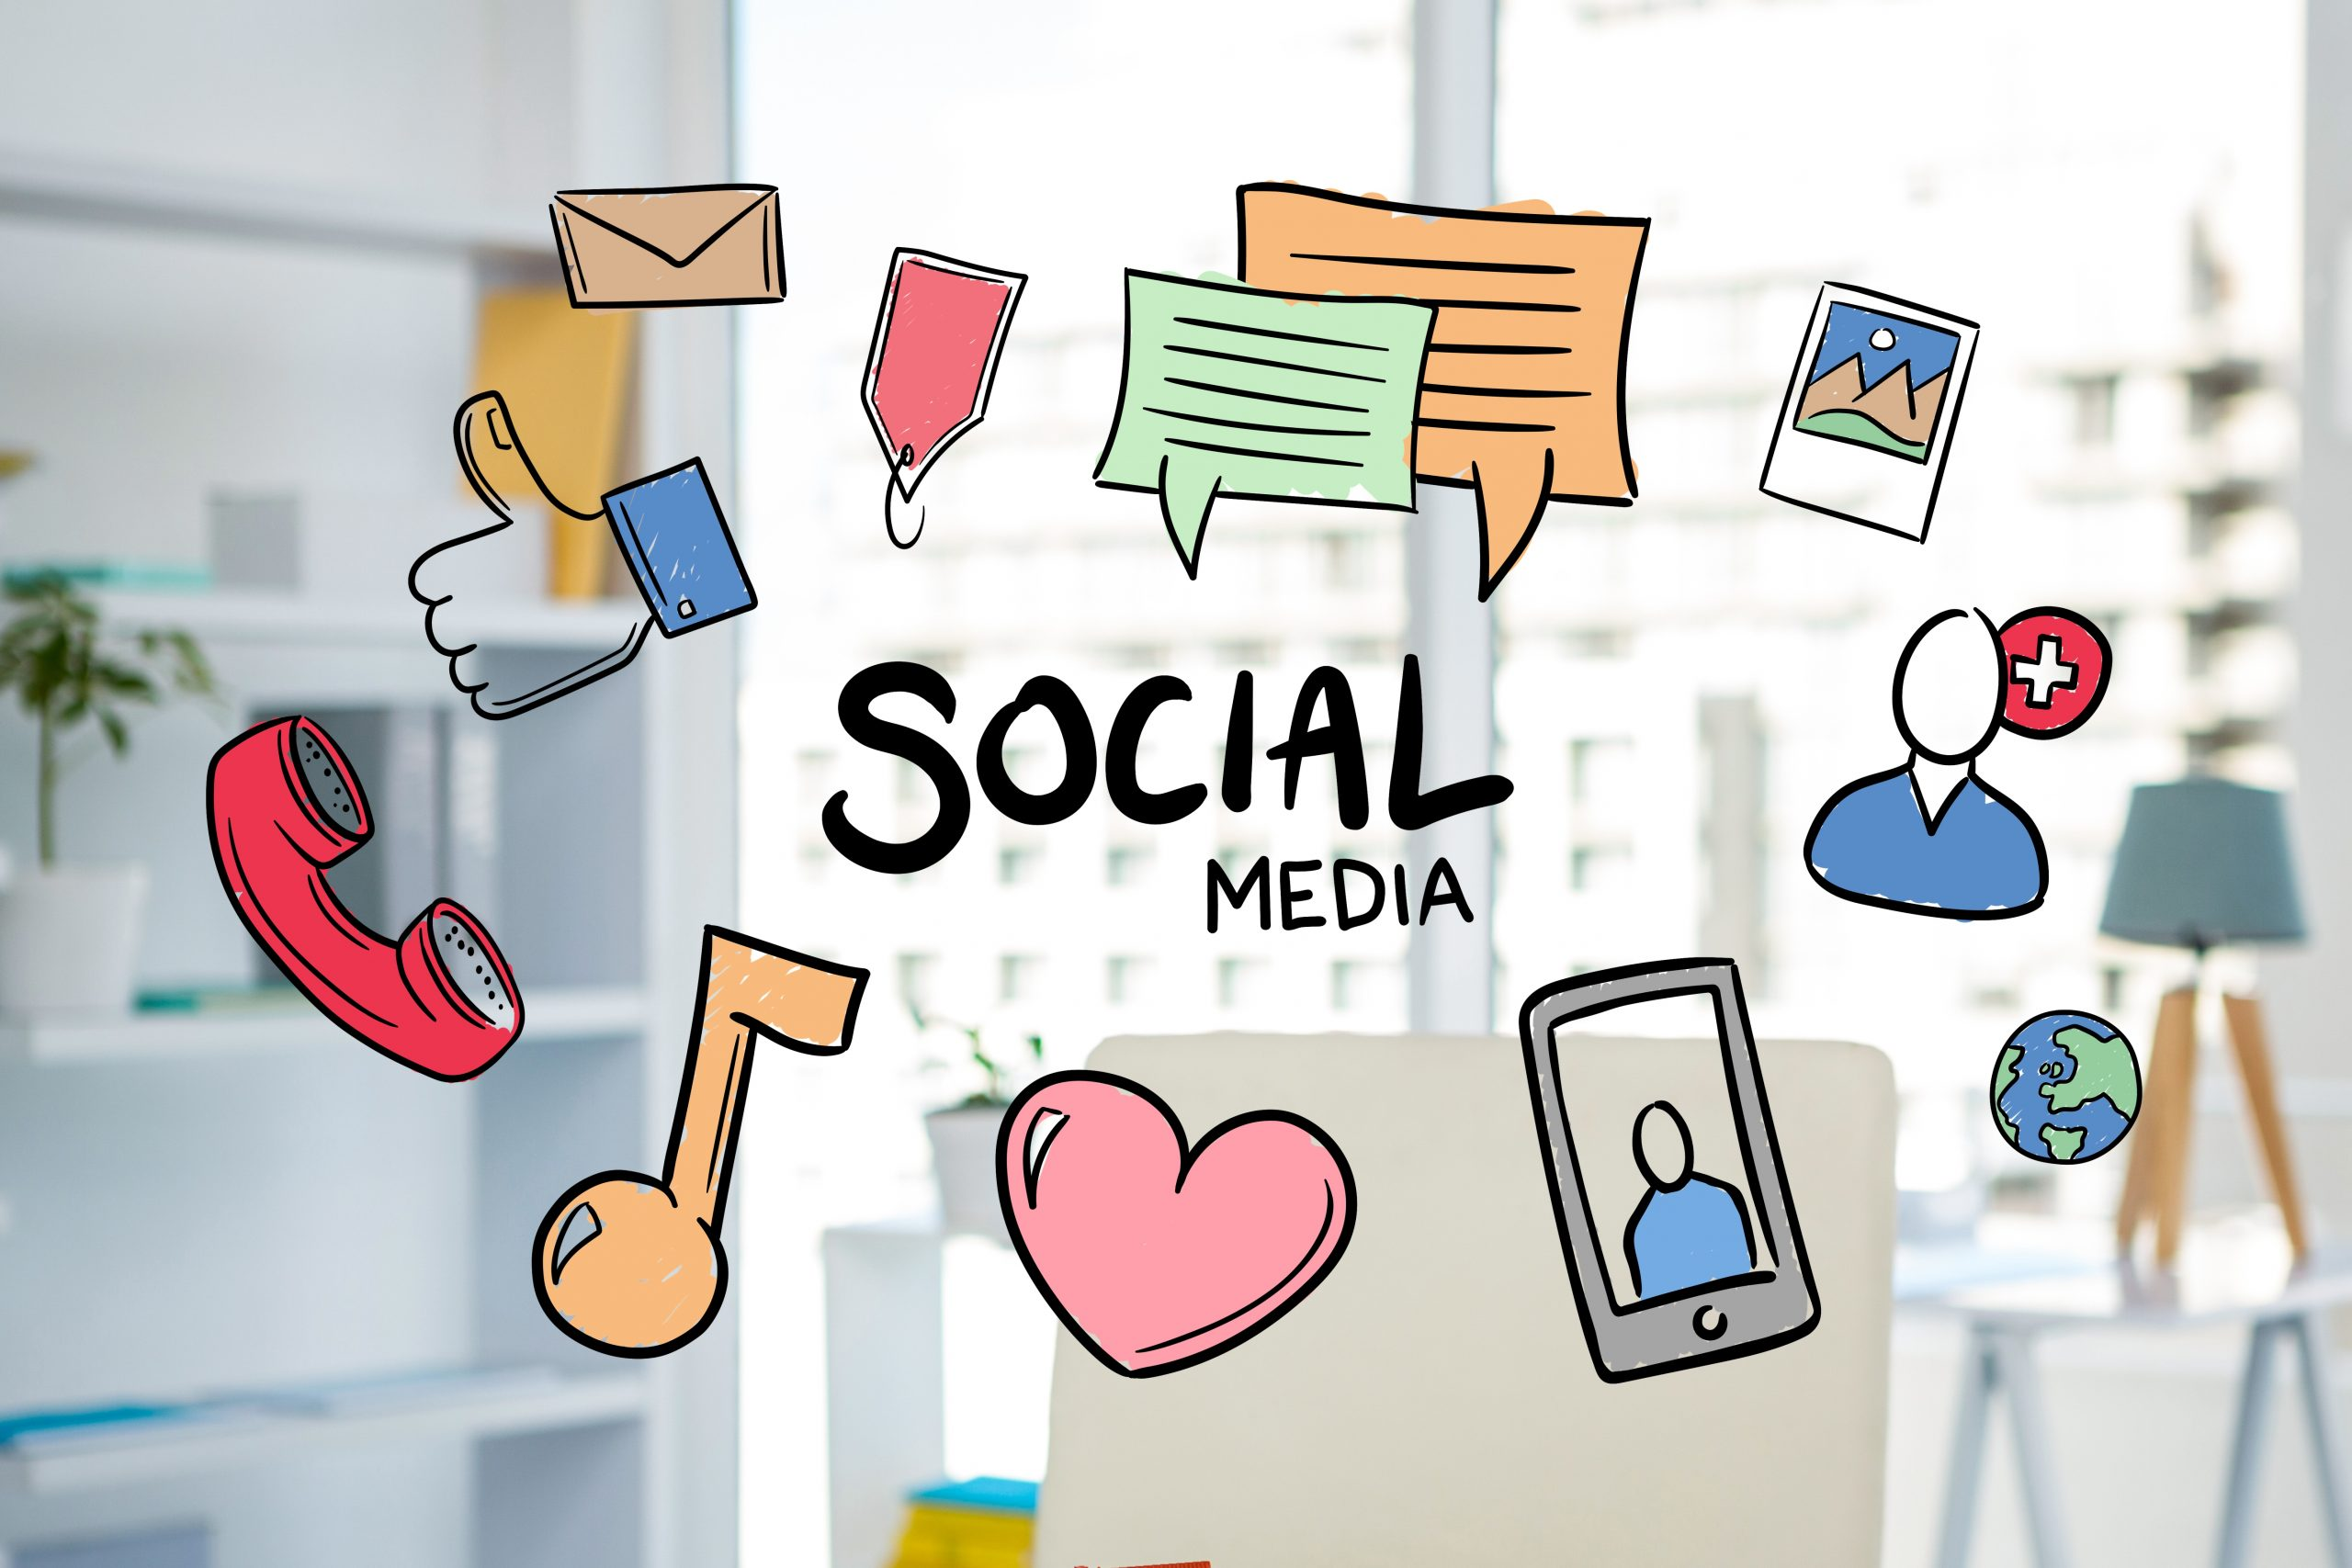 How to promote courses on social media